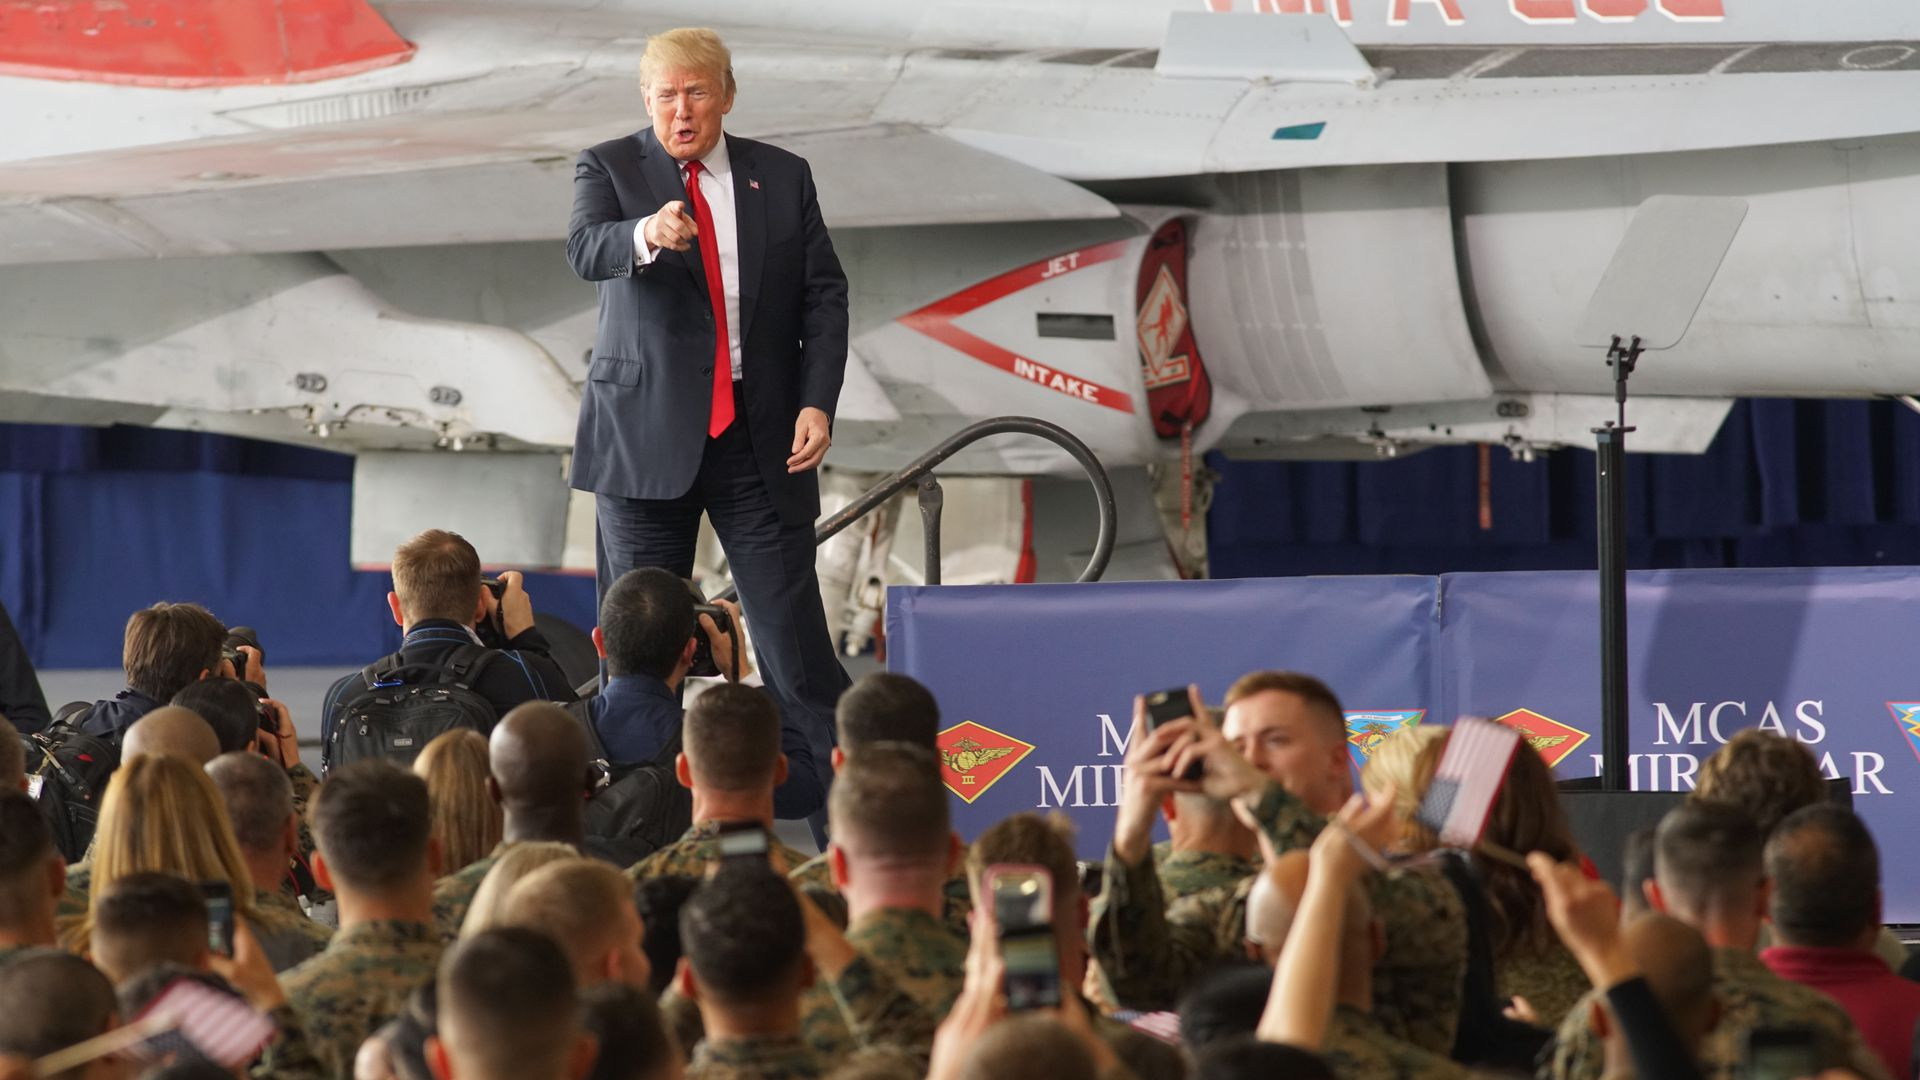 President Donald Trump addresses troops at Miramar Marine Corp Air Station in California.